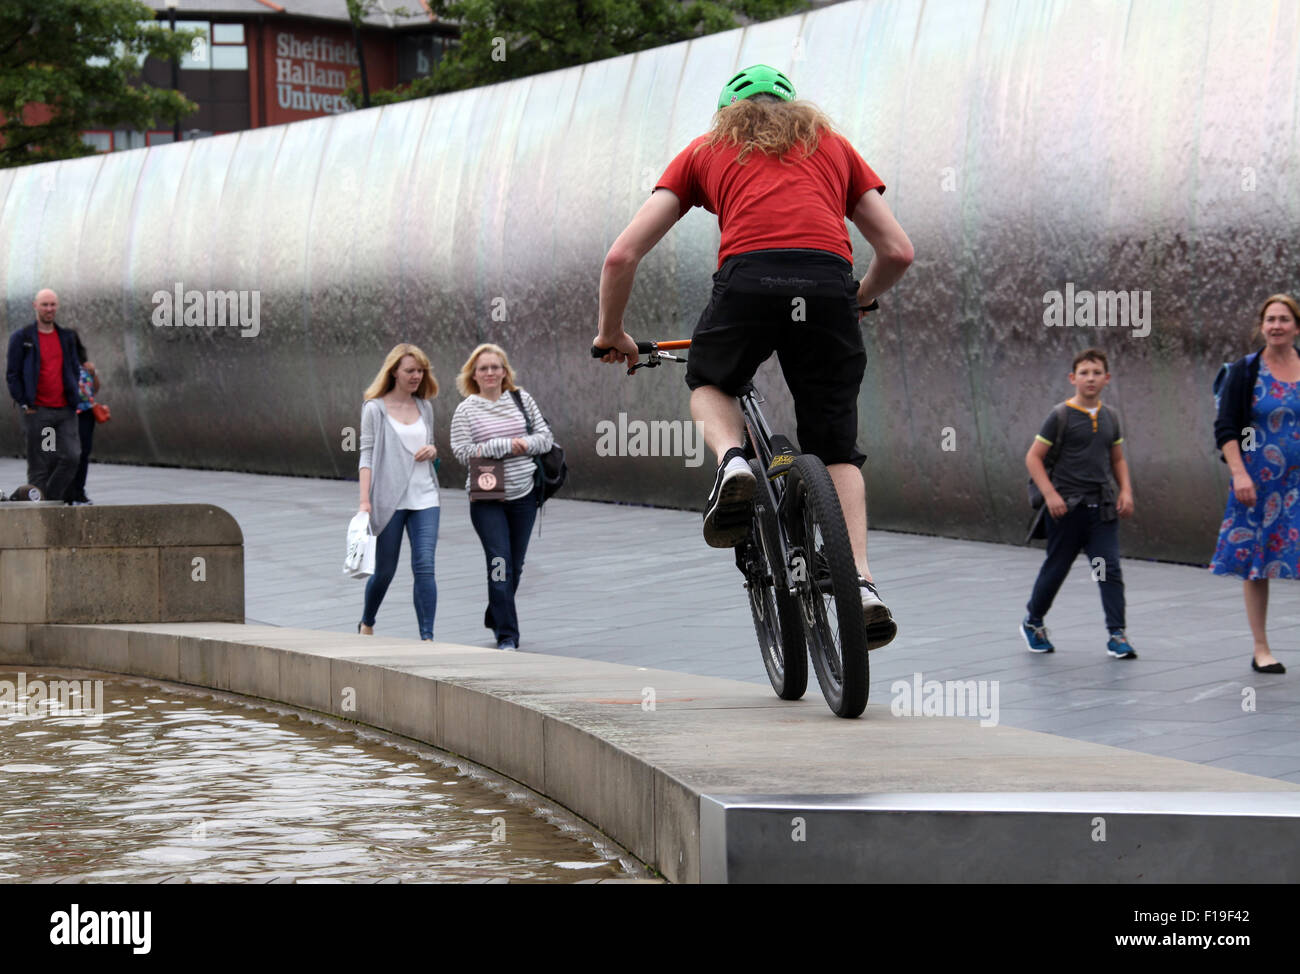 Stunt cyclist at the Cutting Edge steel sculpture and  water feature outside Sheffield Railway Station - Stock Image